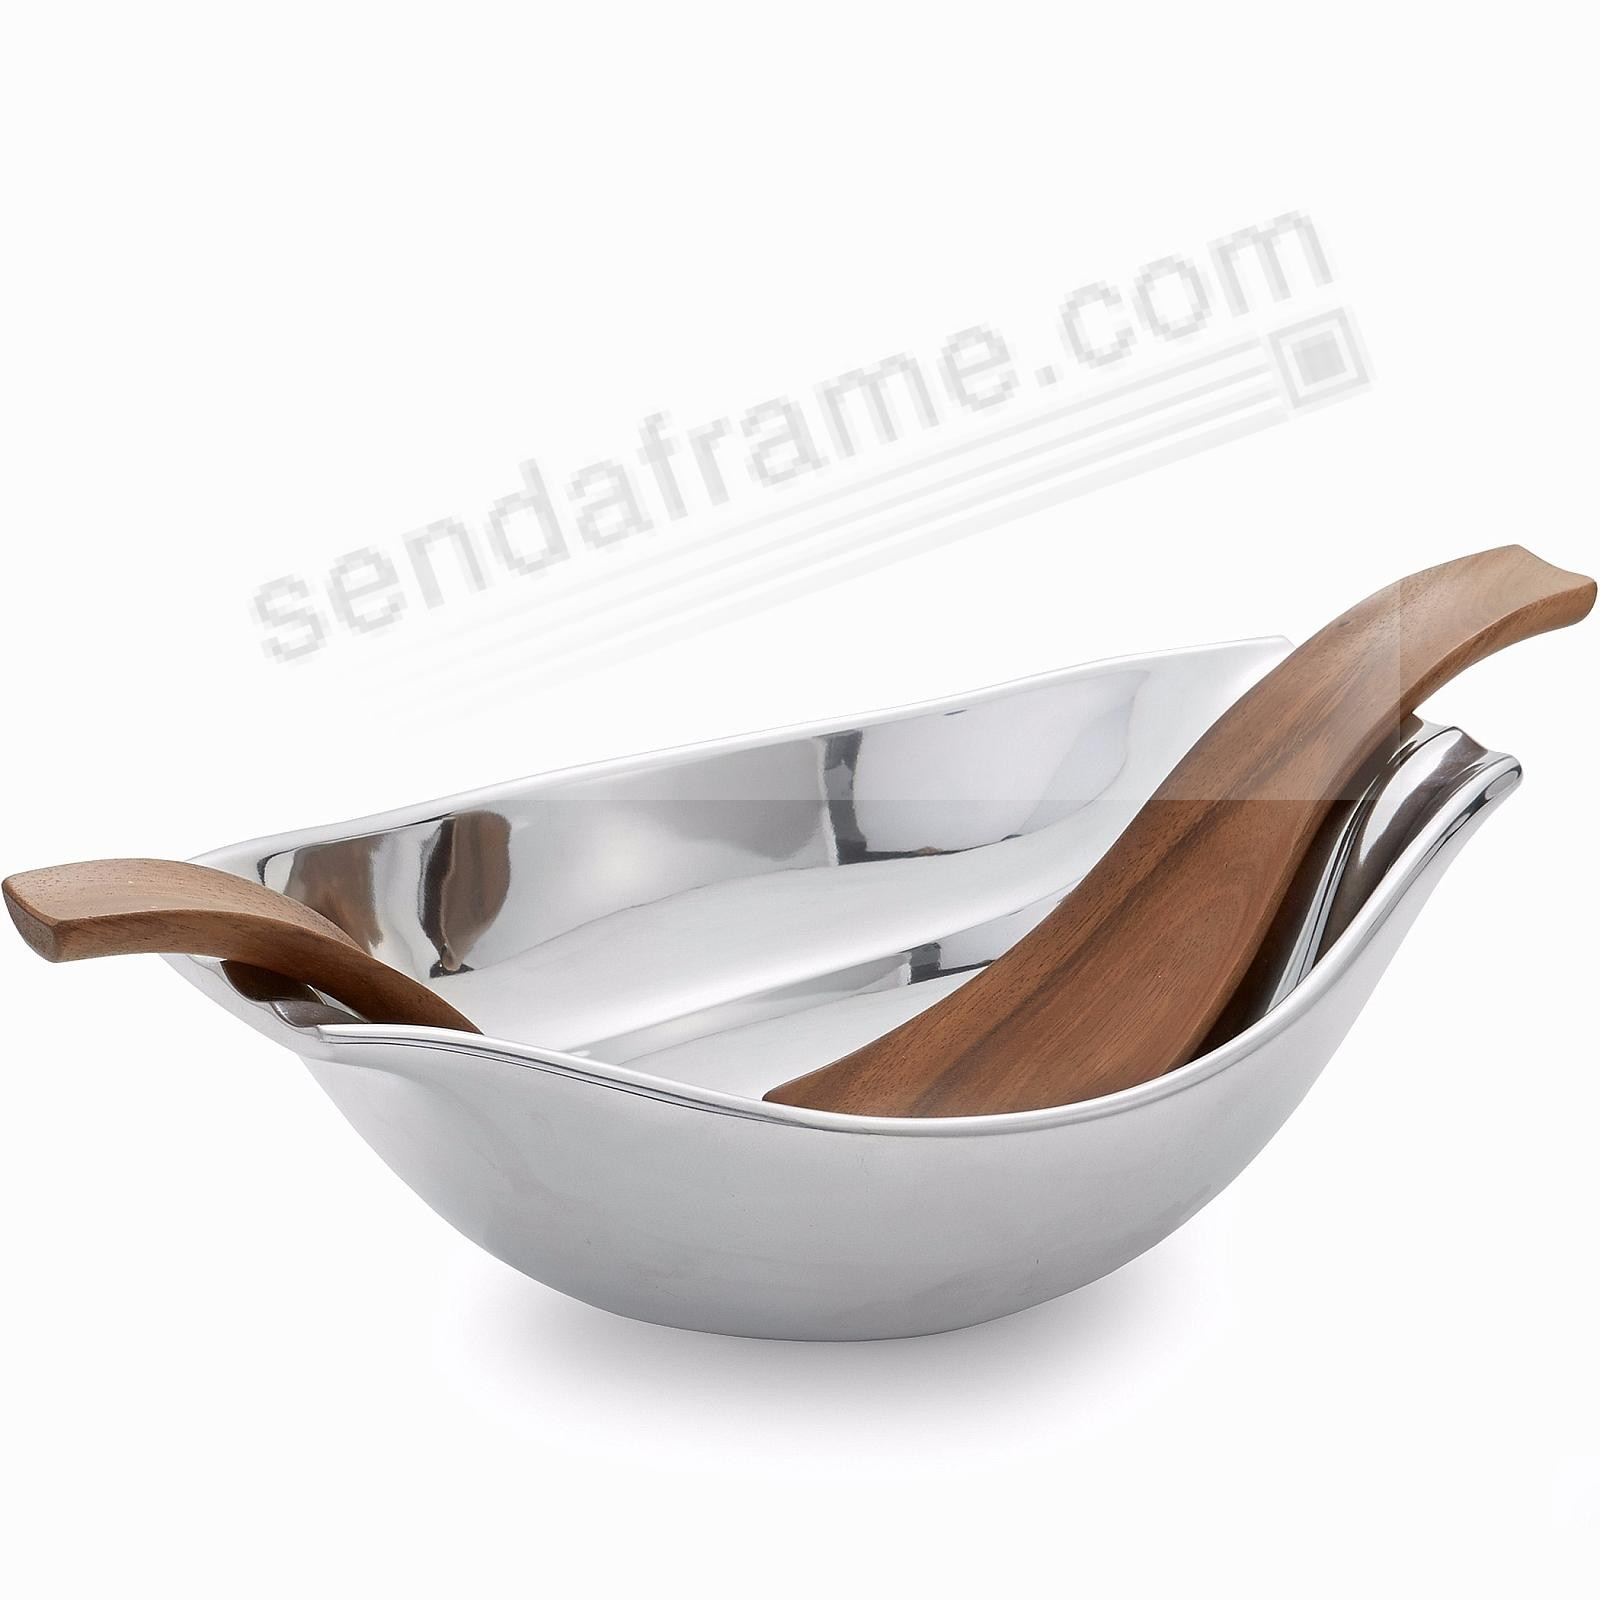 The Original DRIFT BOWL w/SERVERS crafted by Nambe®